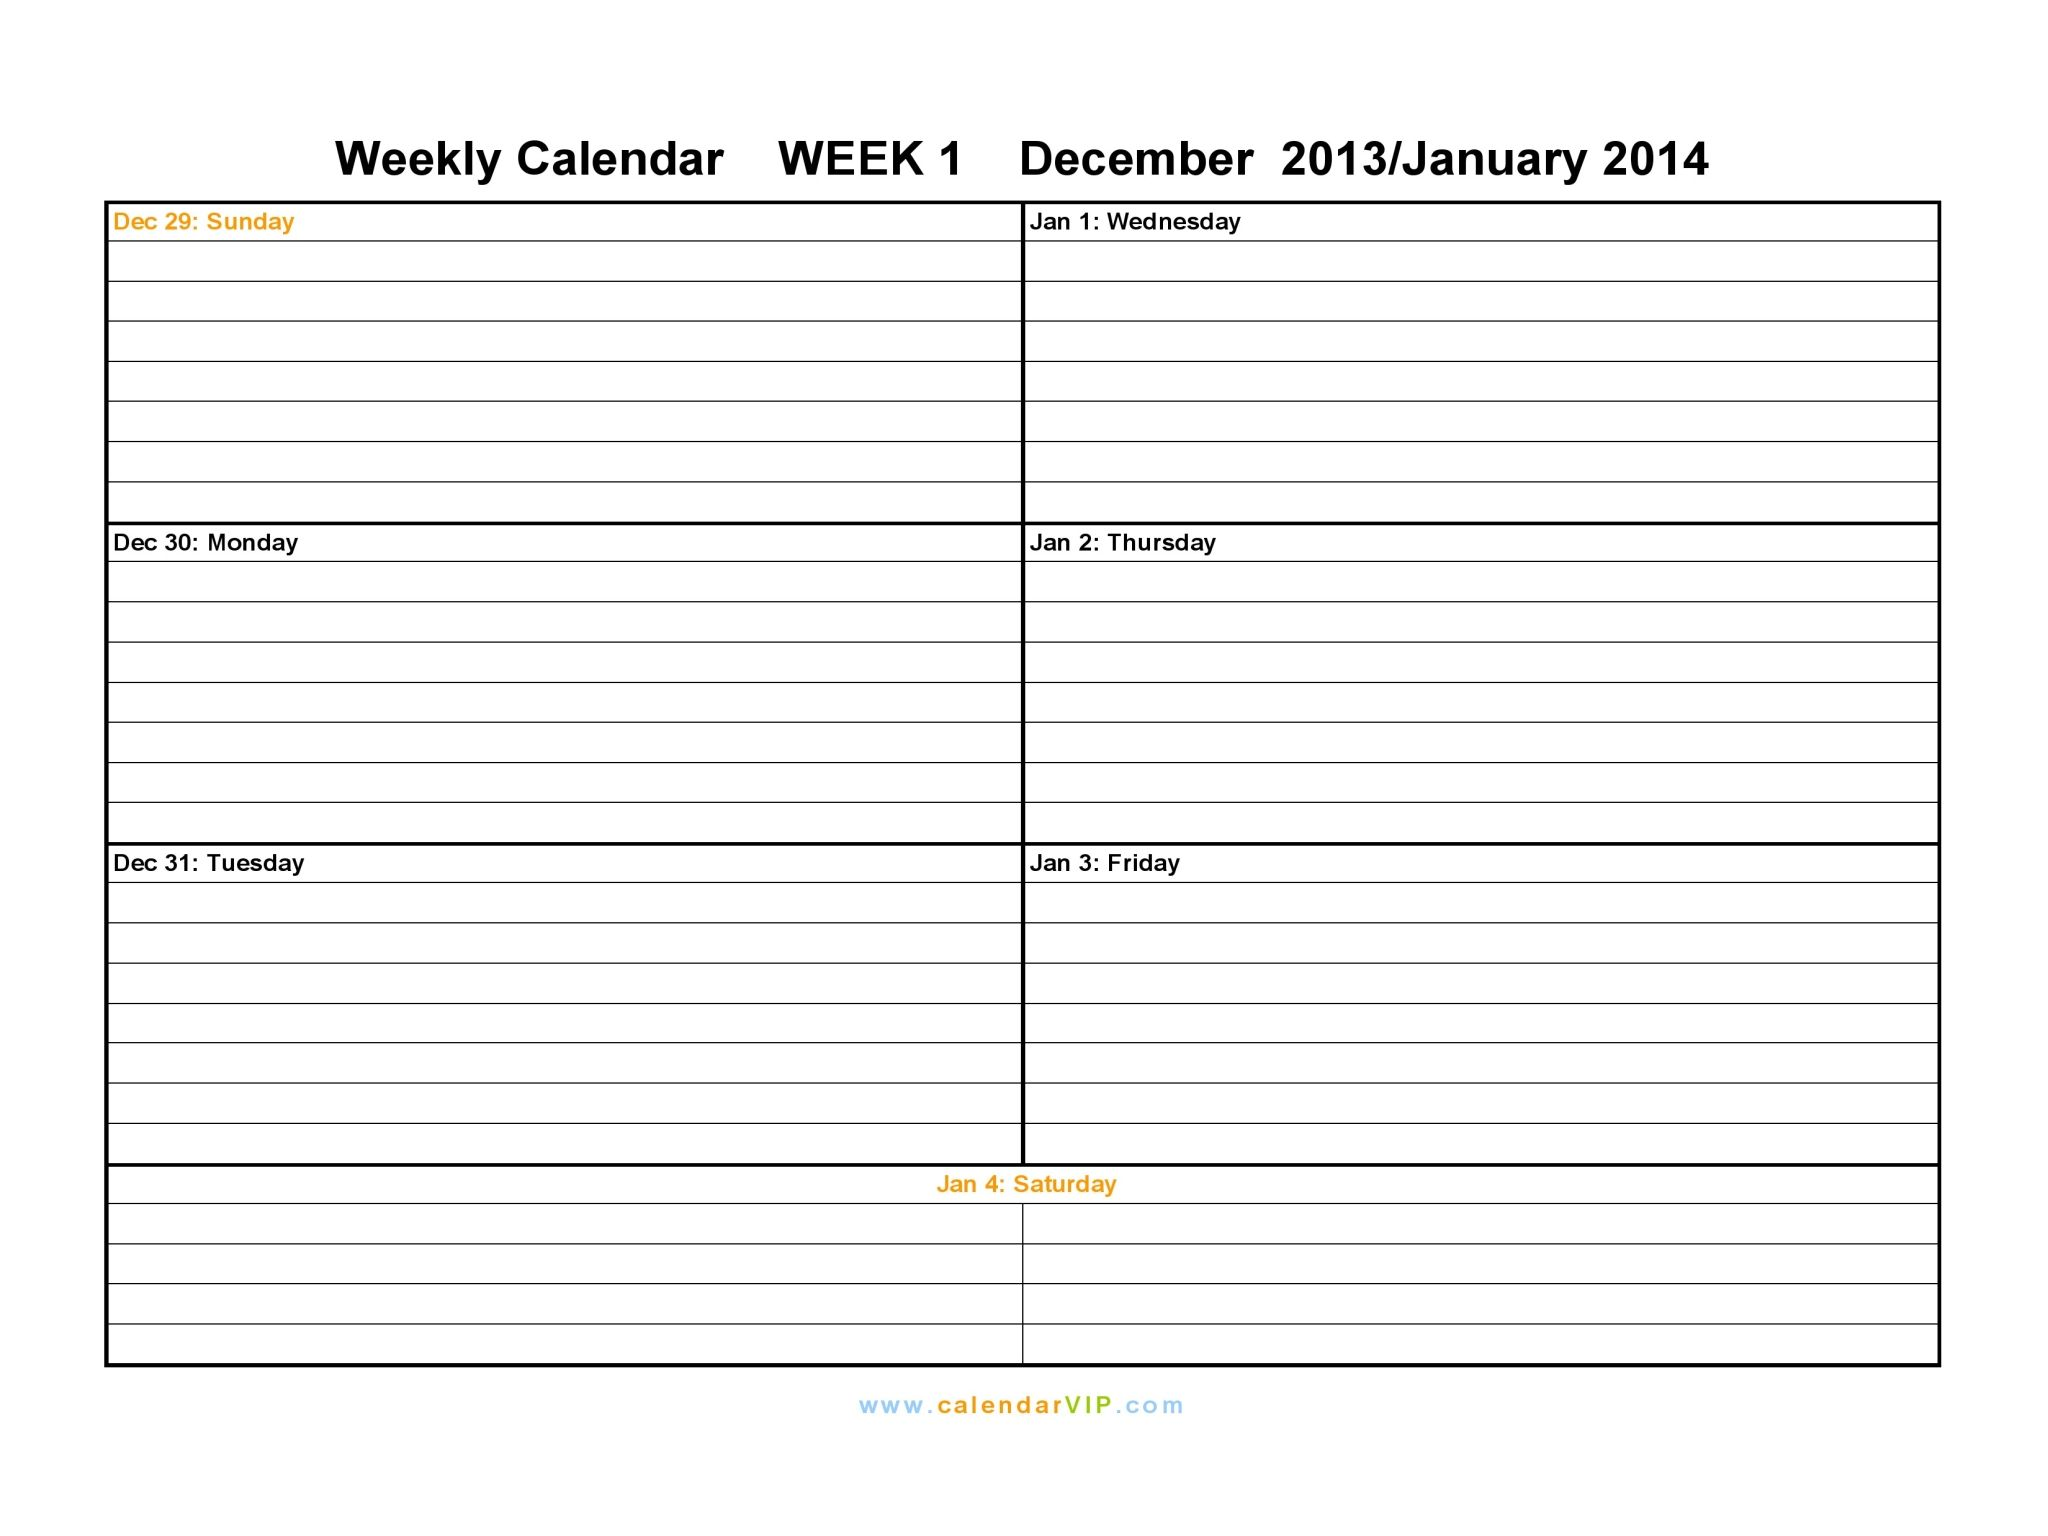 free printable daily calendars 2014 related pictures